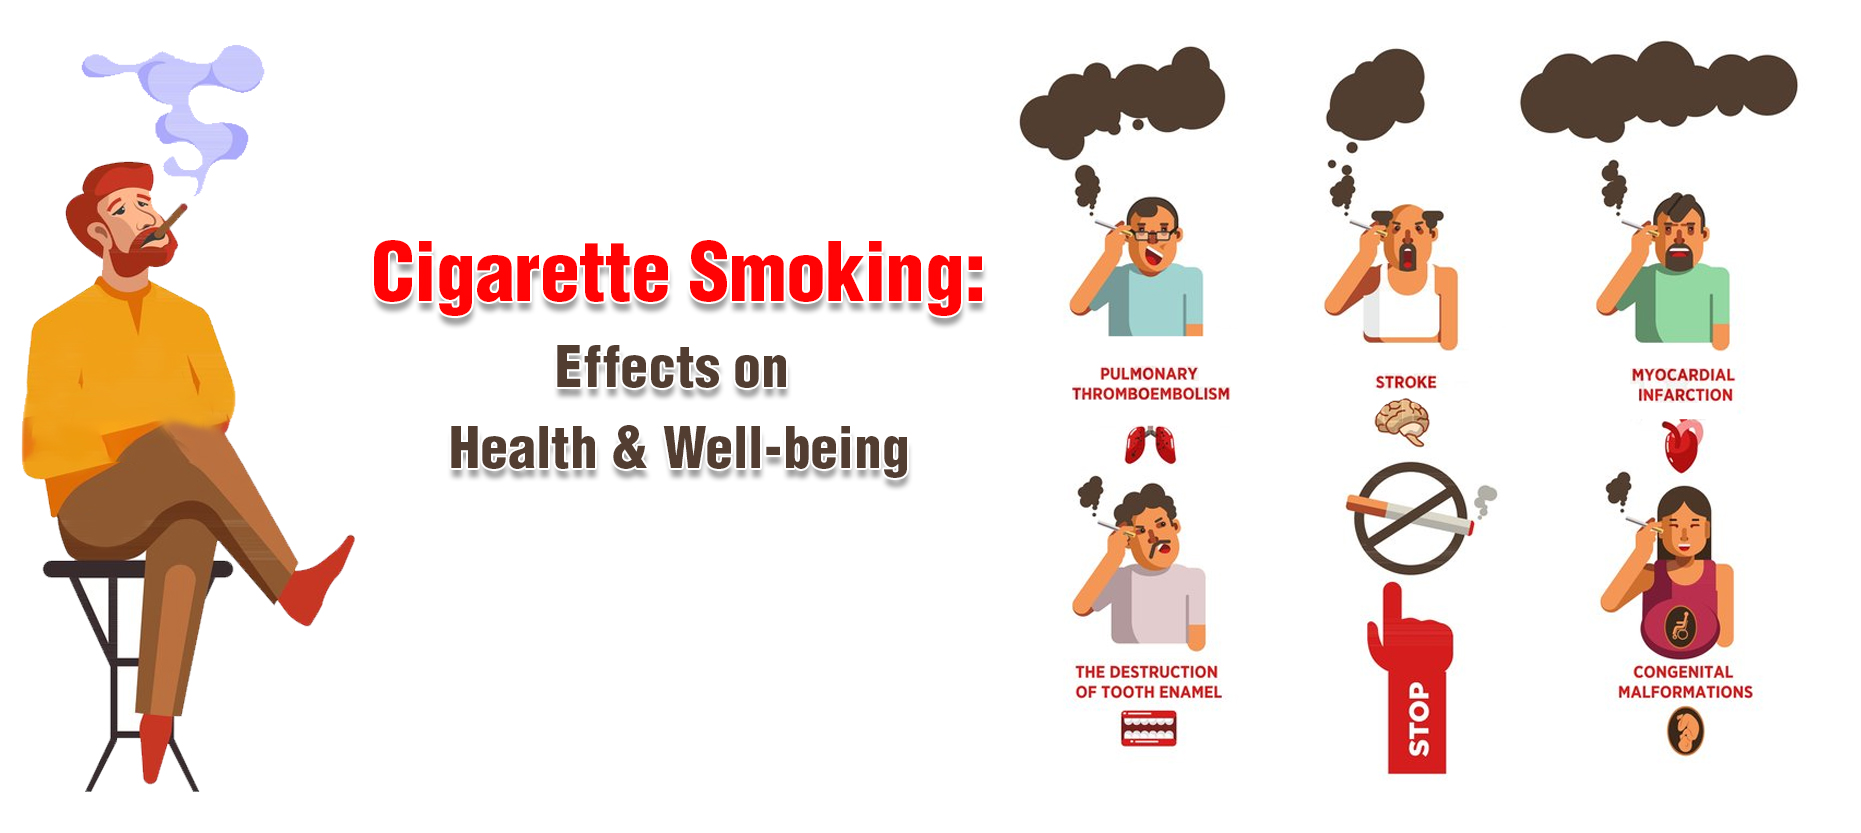 Cigarette Smoking: Effects on Health & Well-being